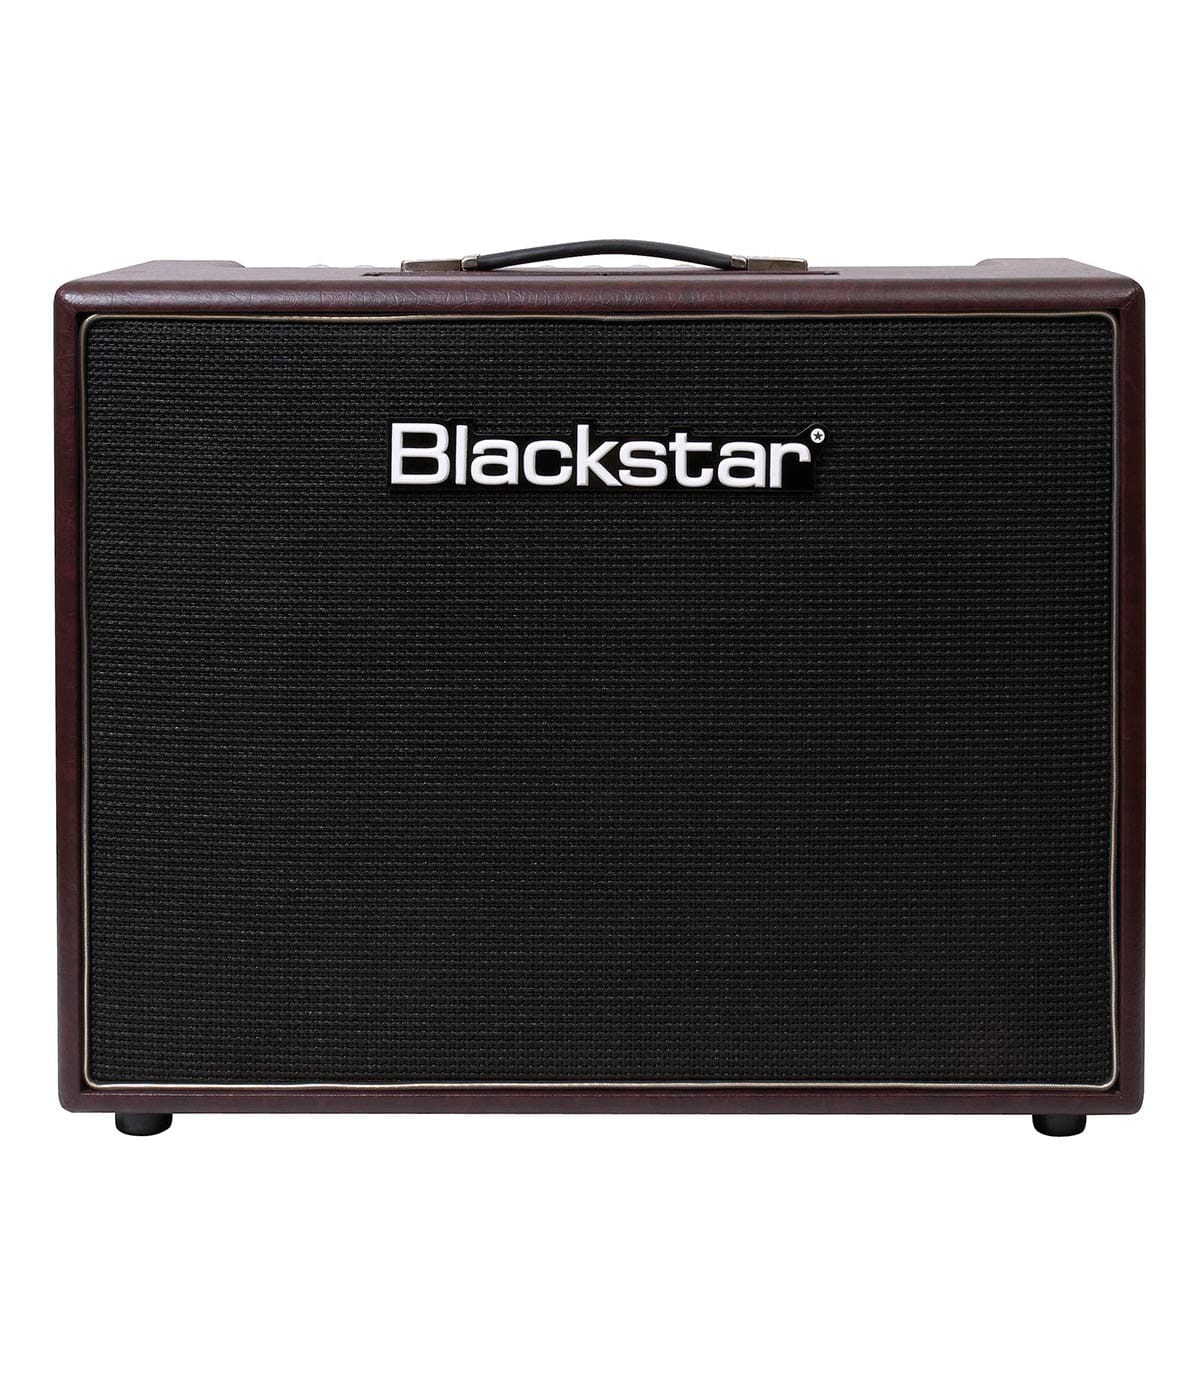 Blackstar - Artisan 30 - Melody House Musical Instruments